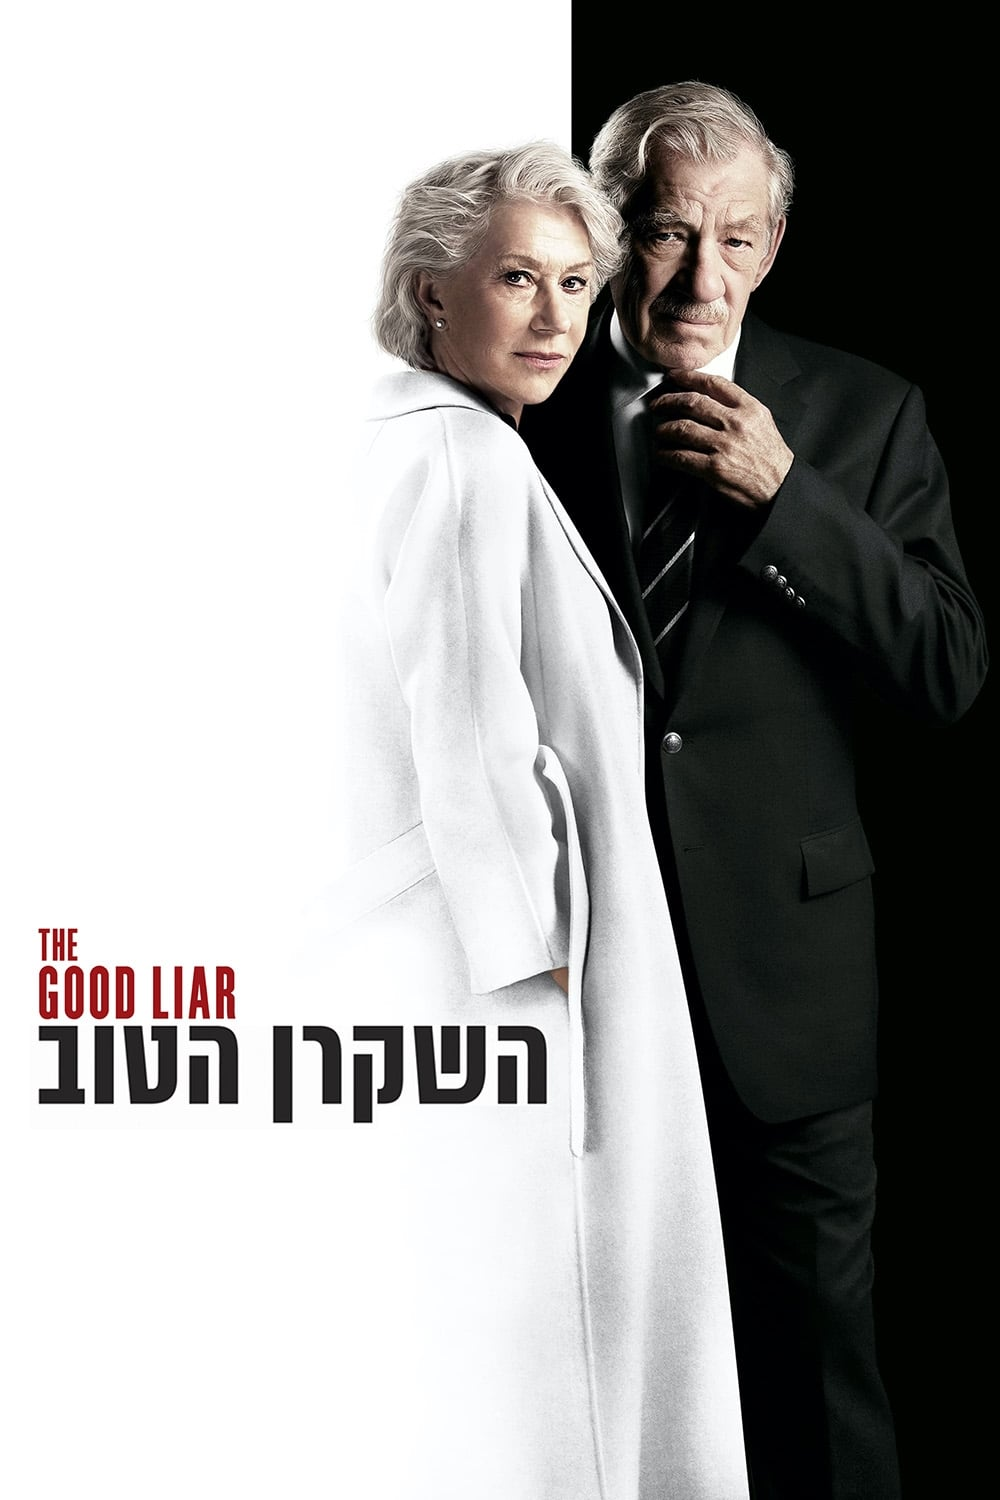 Poster and image movie Film The Good Liar 2019